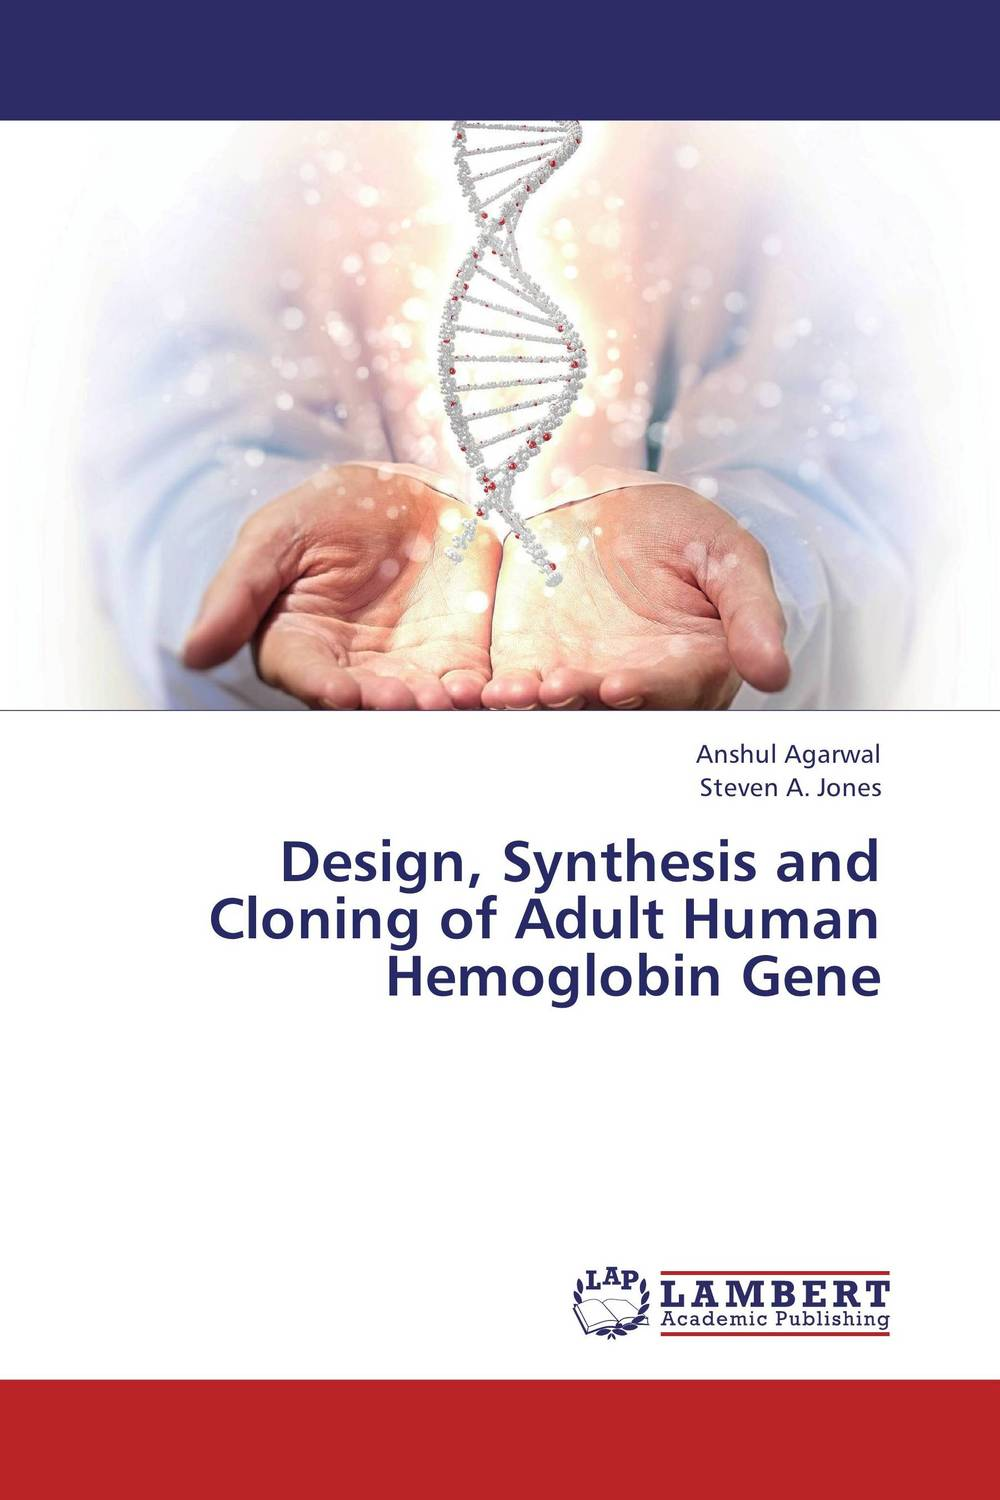 Design, Synthesis and Cloning of Adult Human Hemoglobin Gene